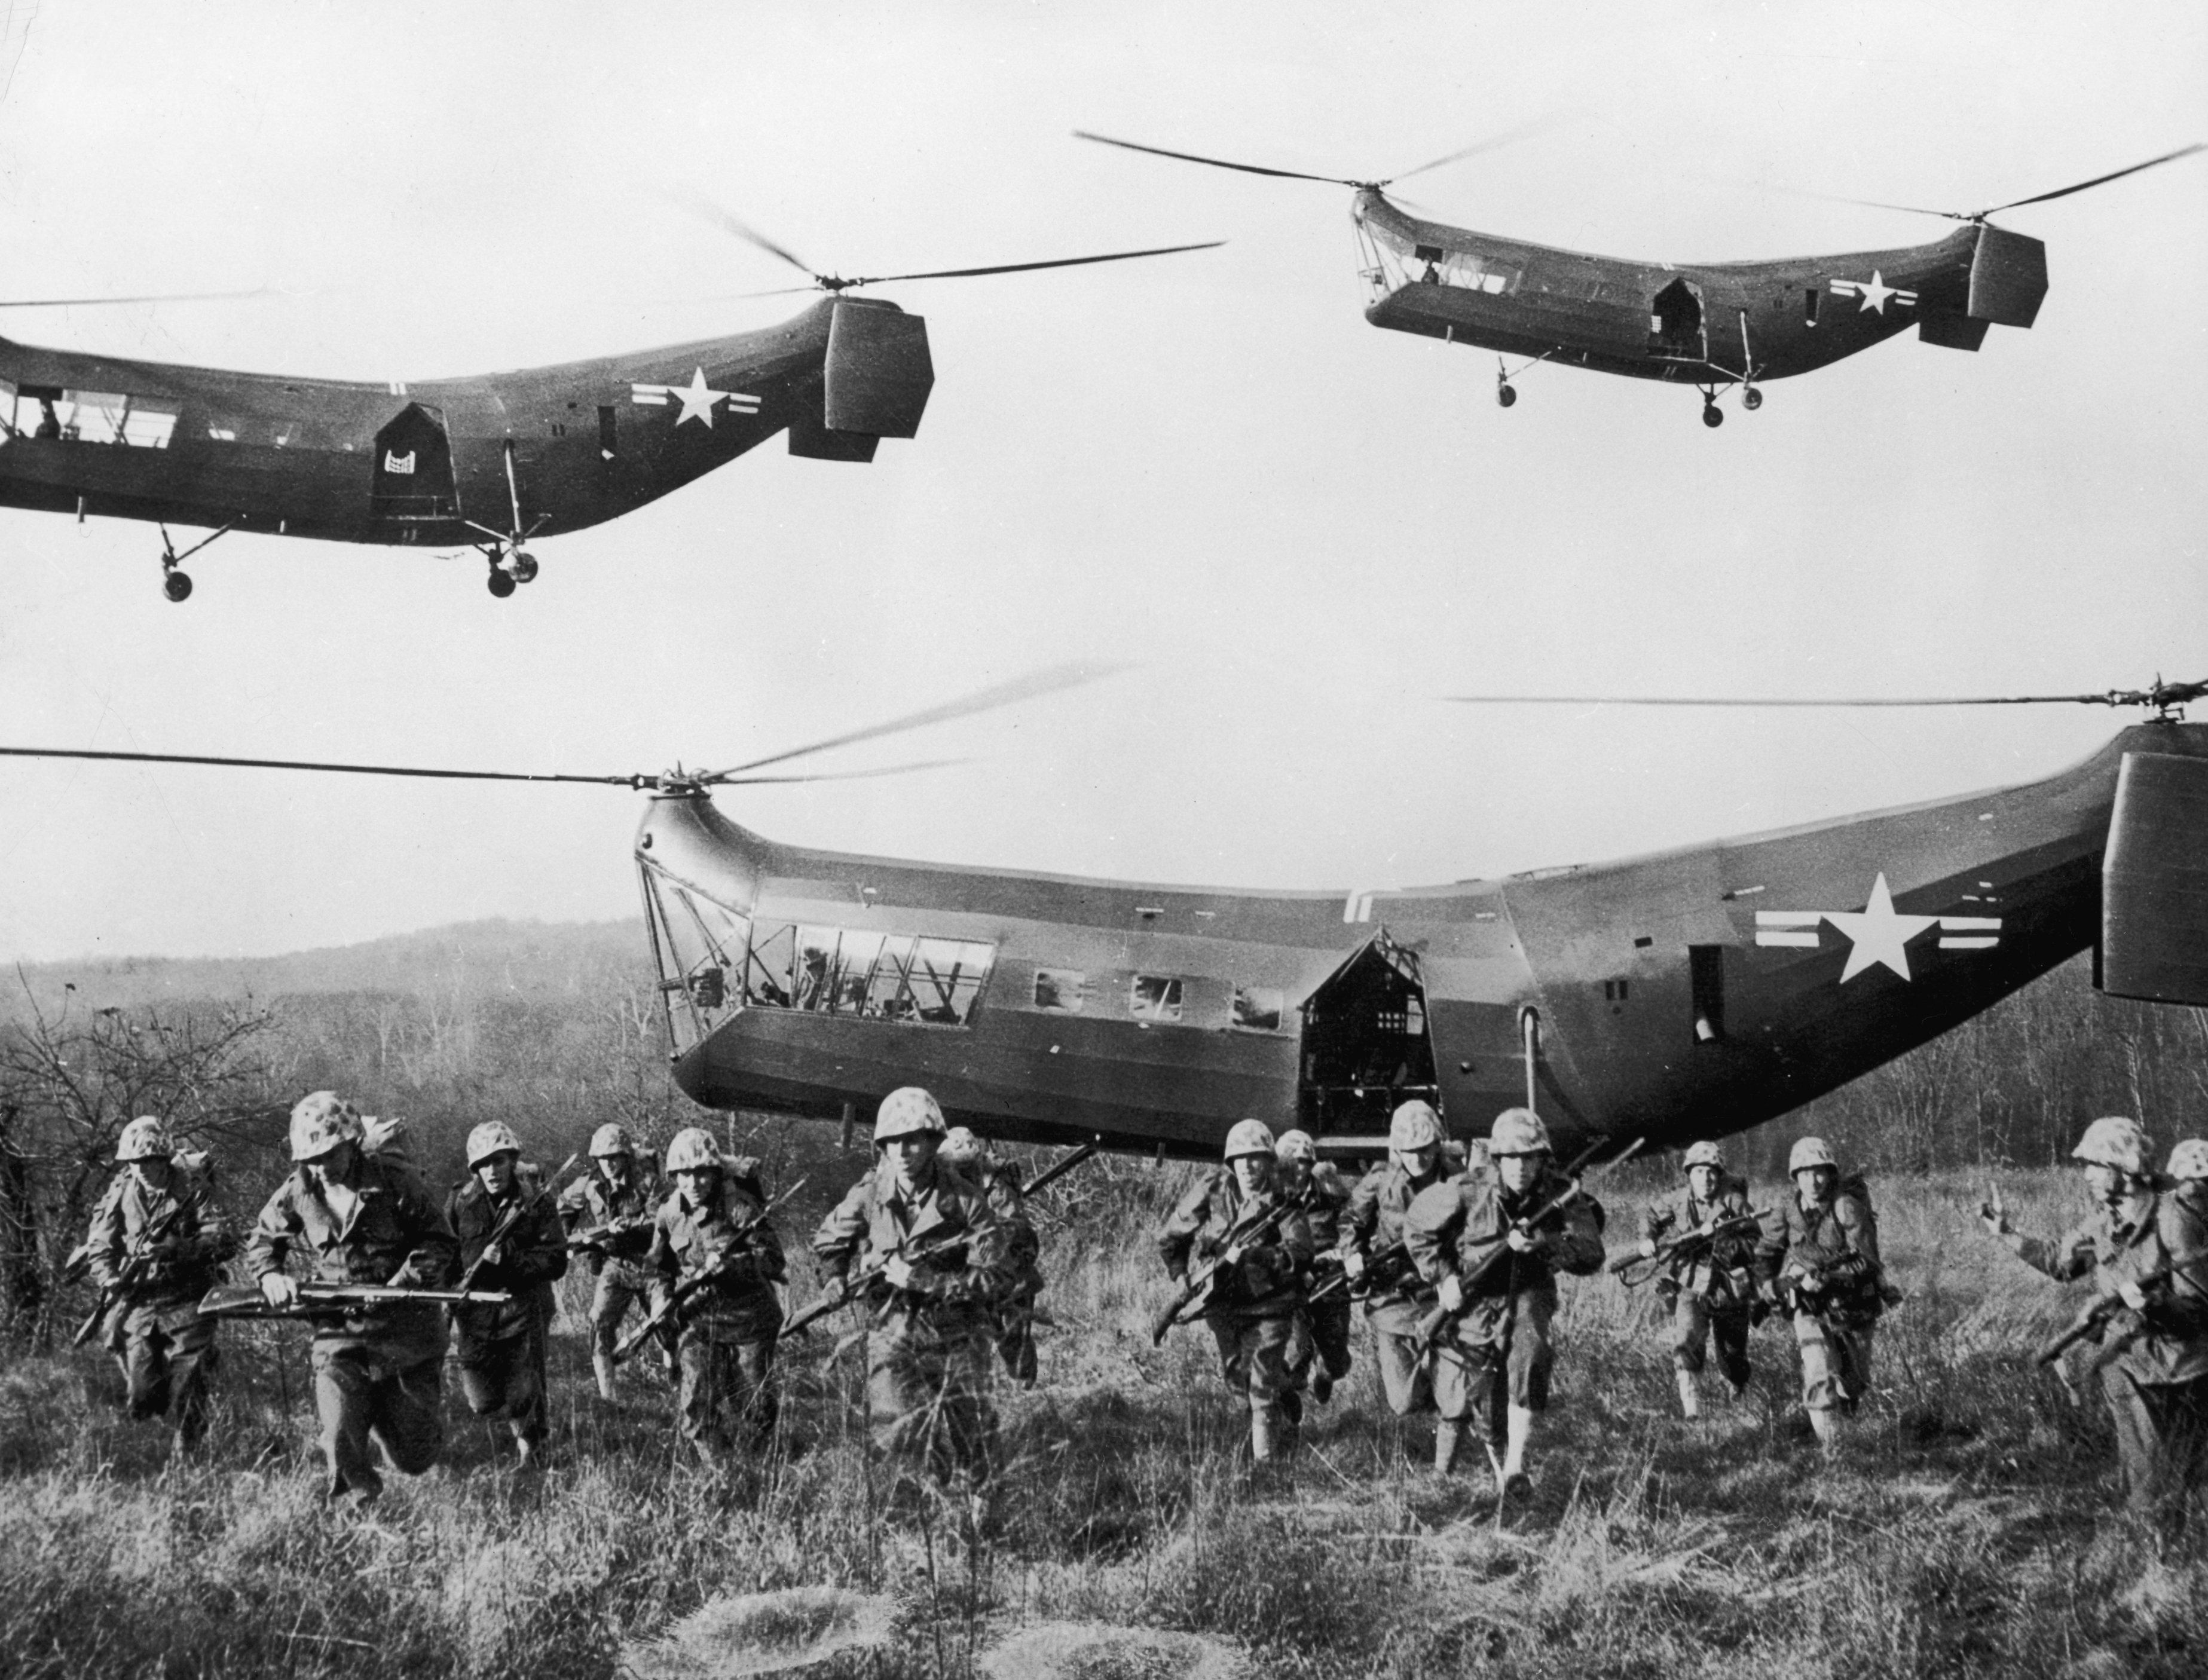 U.S. troops emerge from tandem helicopters onto an open field during the Korean War.